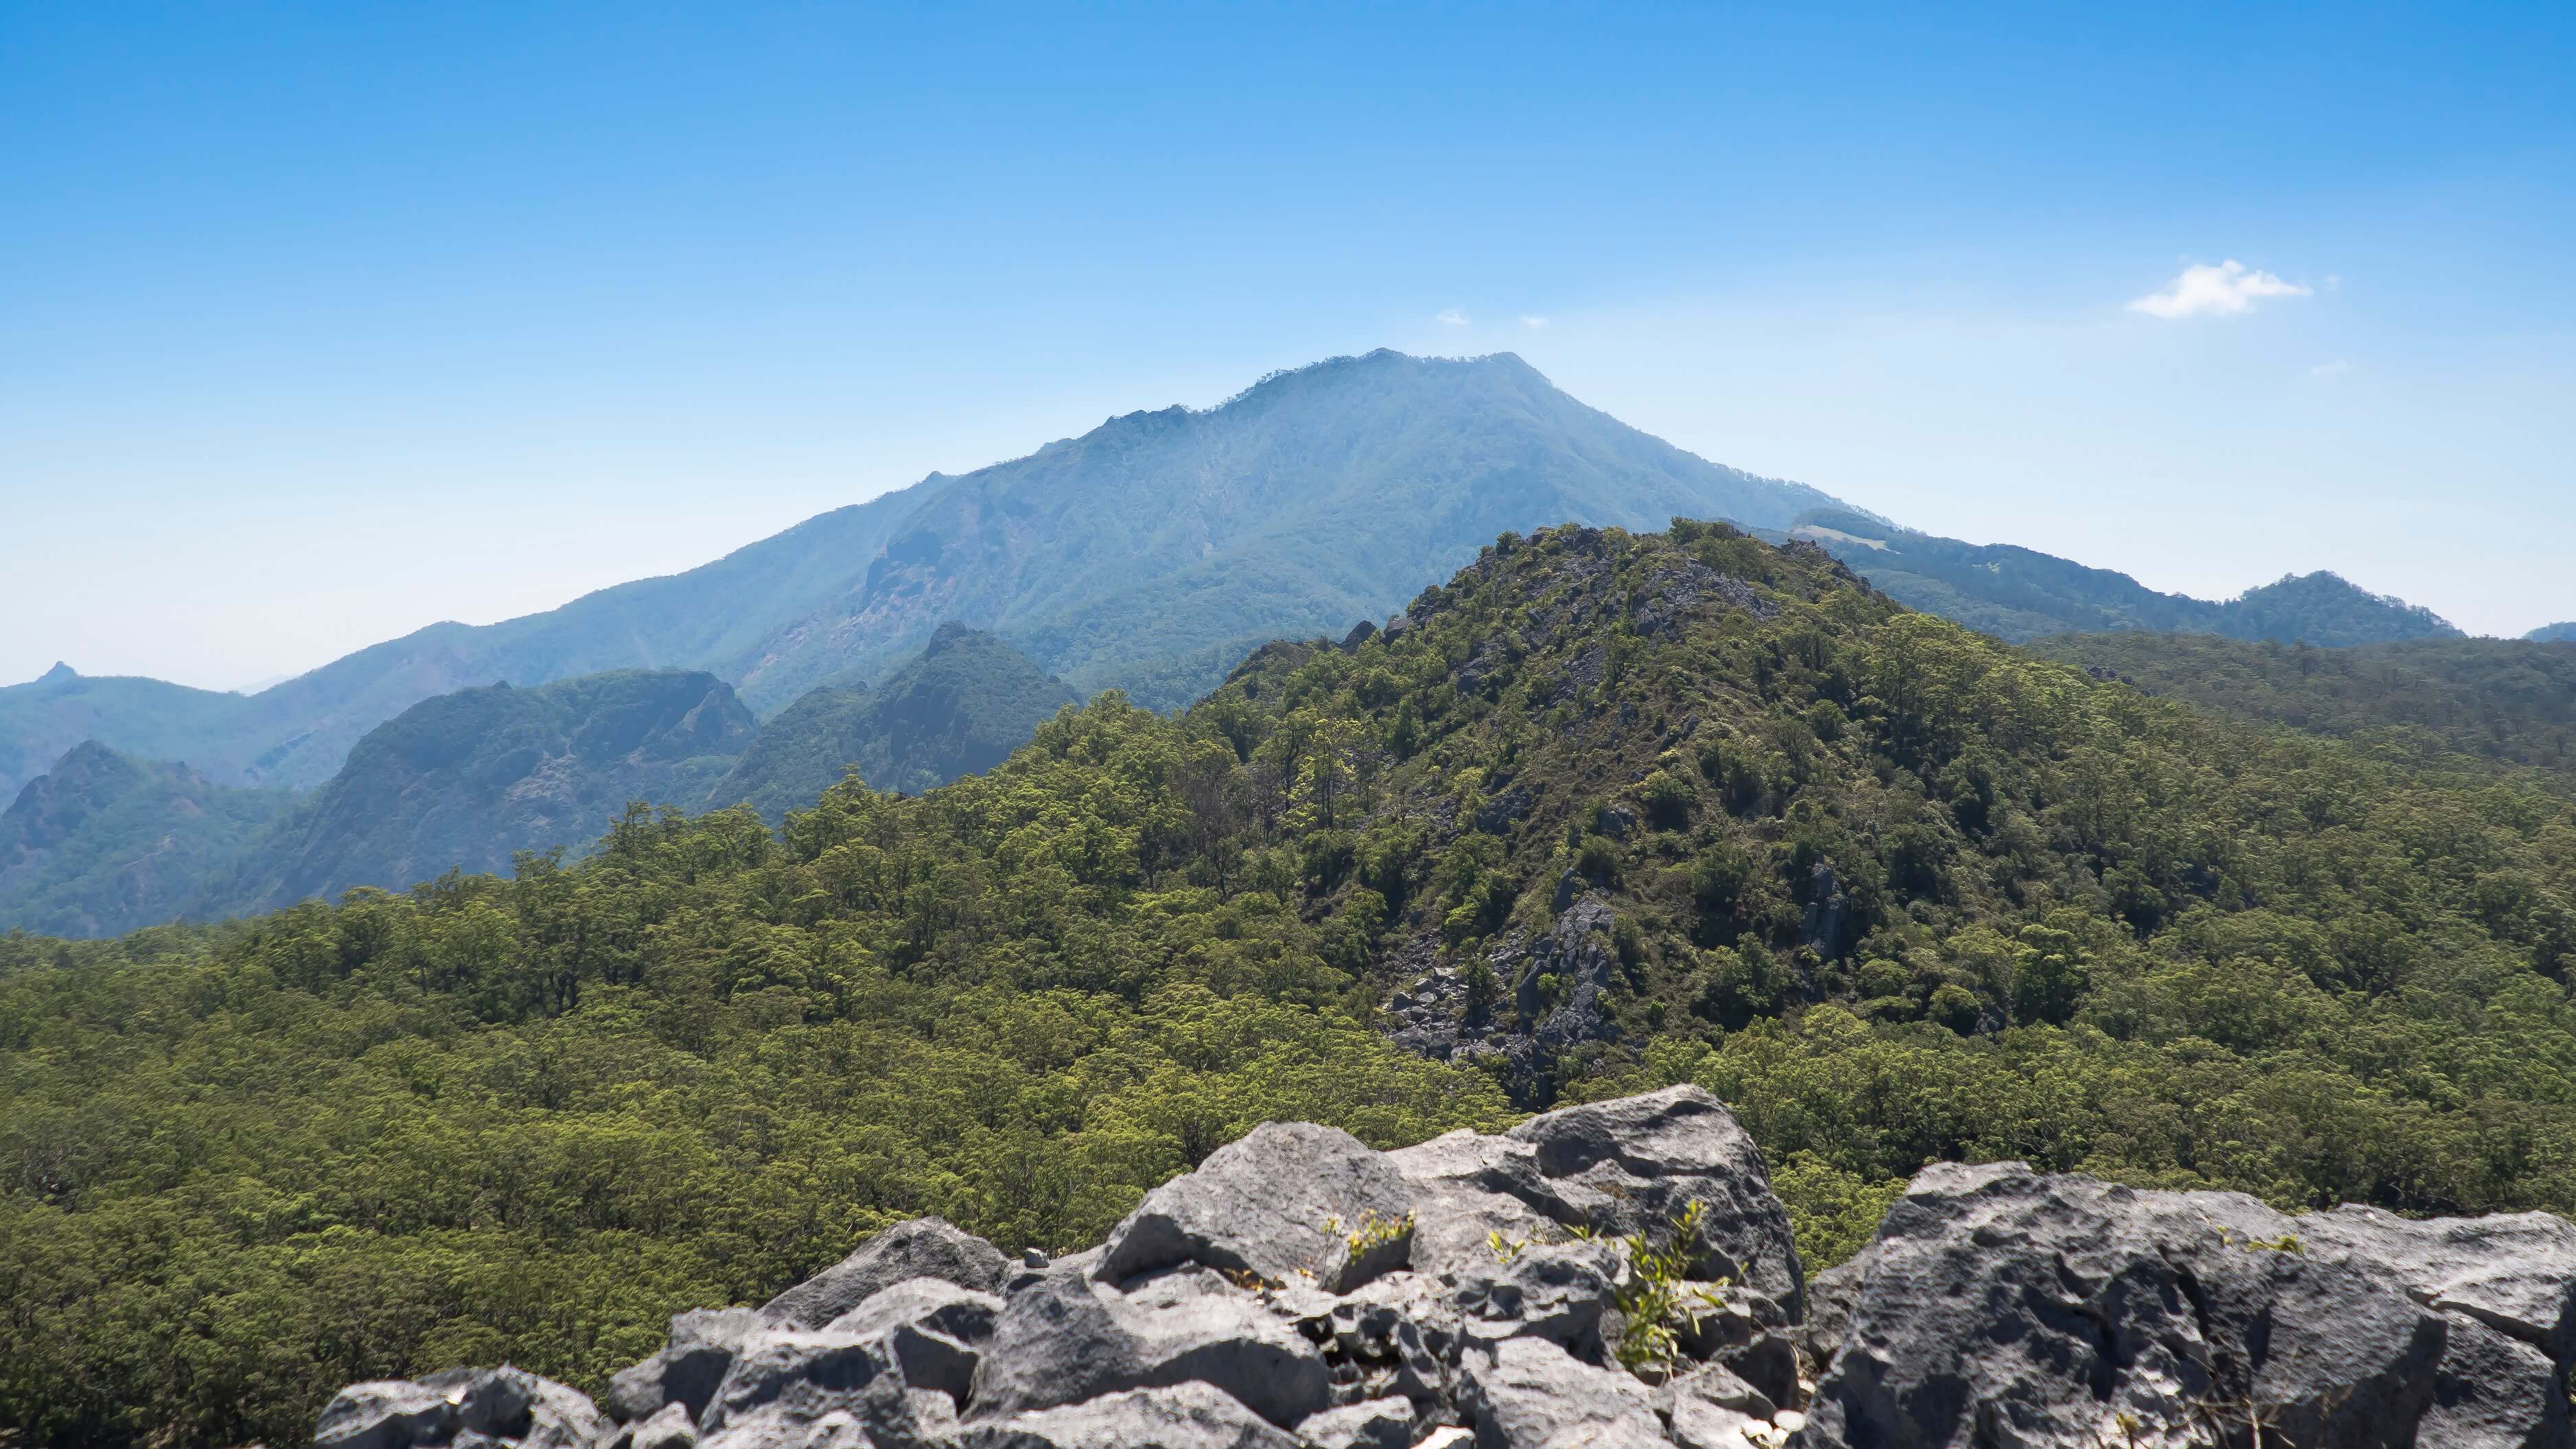 View of Mount Mutis from Benteng Oenino, a rock hill that was believed to serve as a fortress in ancient Timorese wars. Orang Mollo inhabit the foothills of Mount Mutis, the source of four major Timorese rivers.